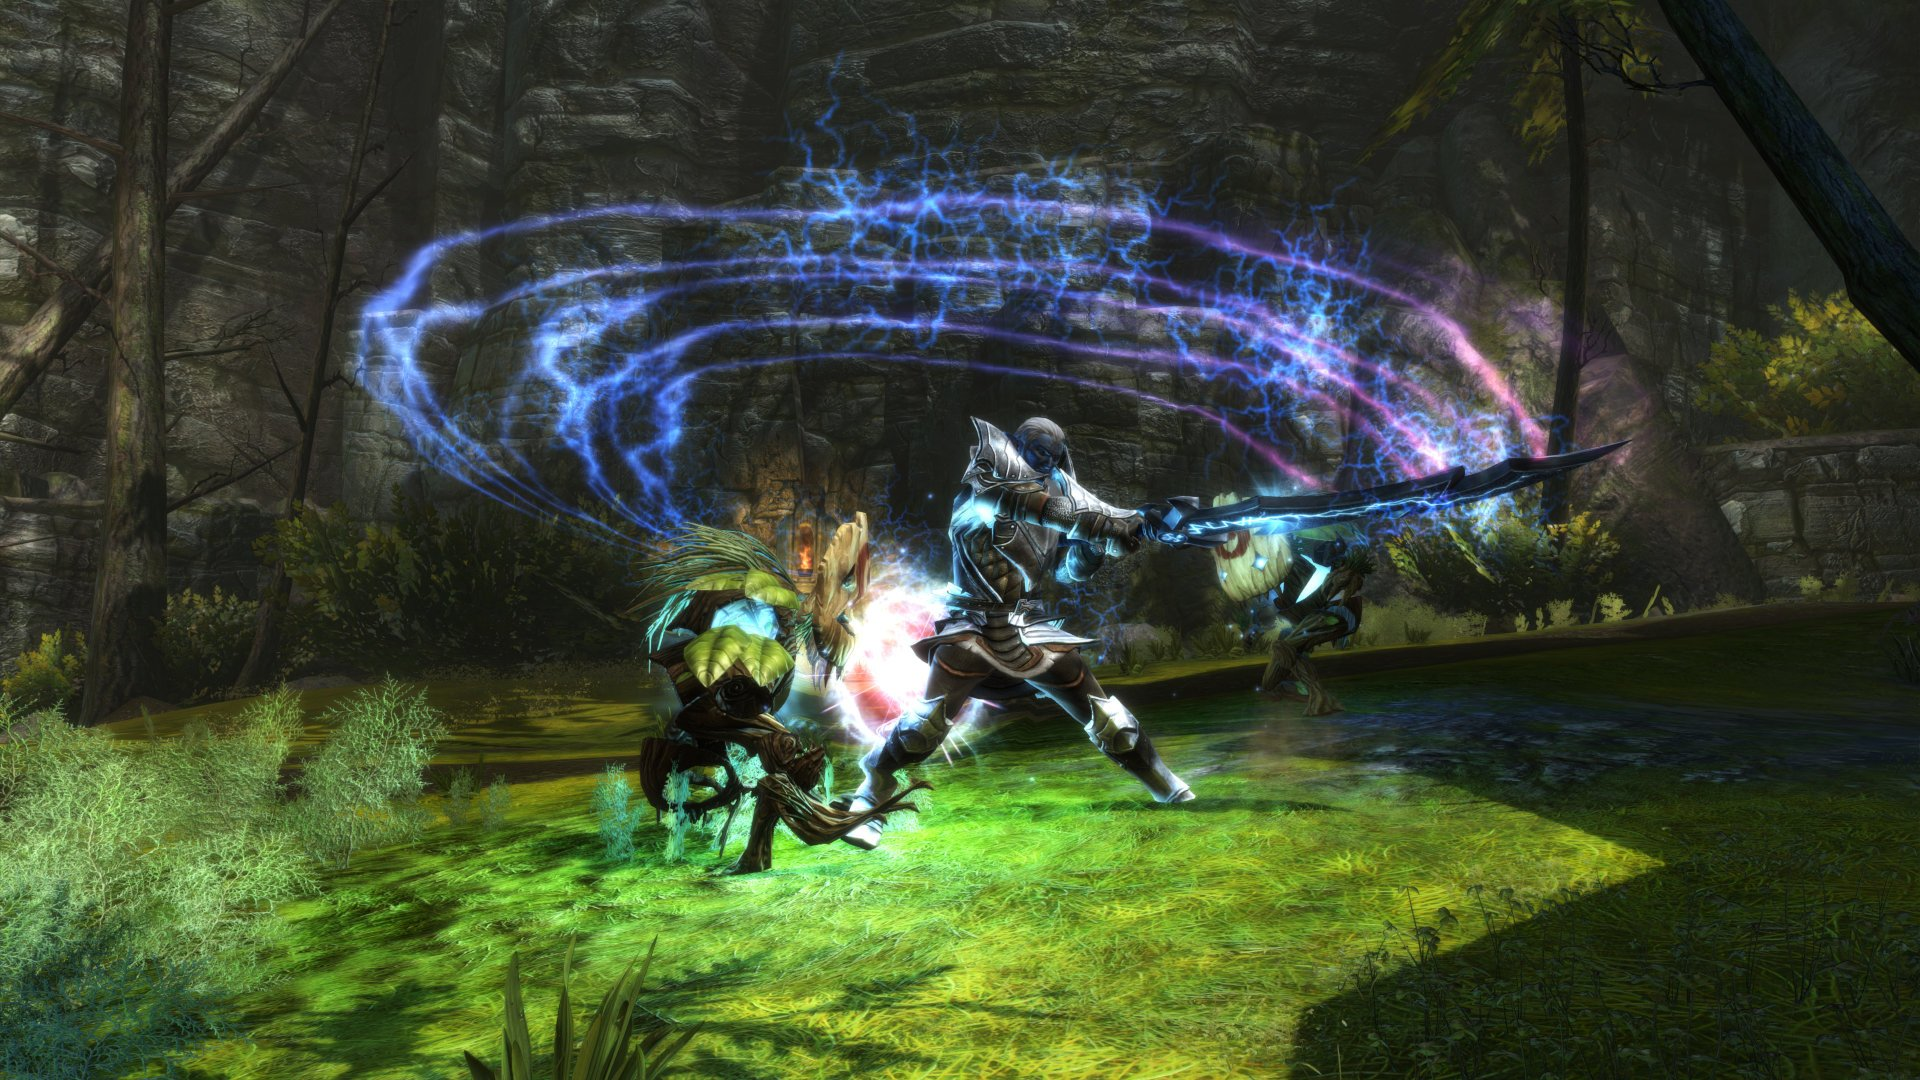 kingdoms of amalur re-reckoning, dodge, how to